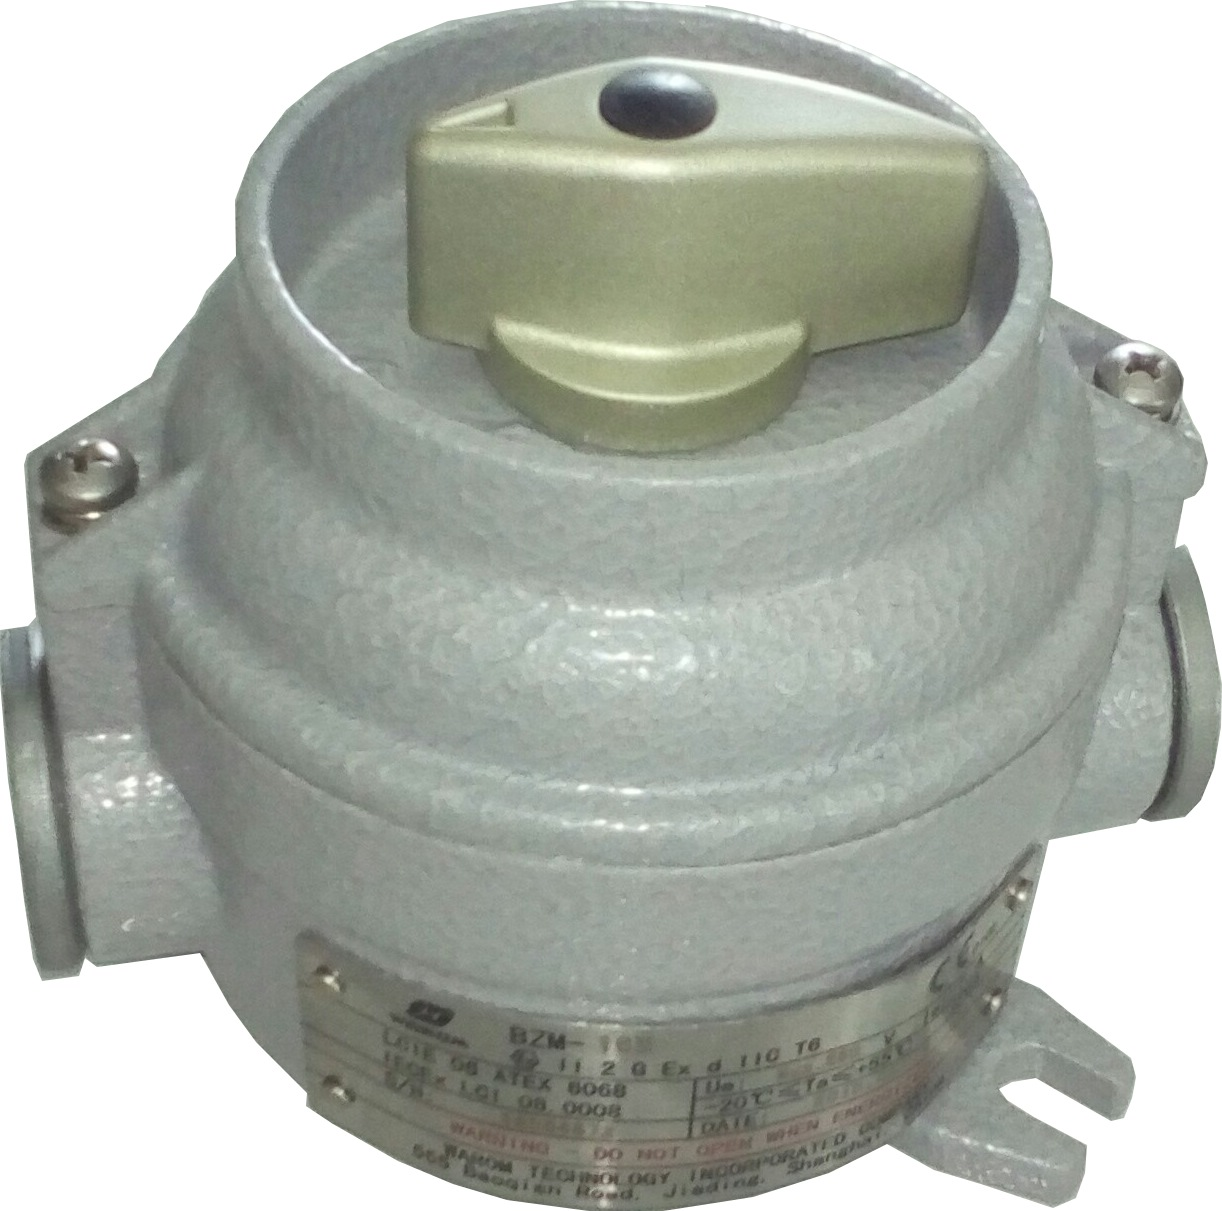 Warom On/off Switch BZM-16B - Explosion Proof